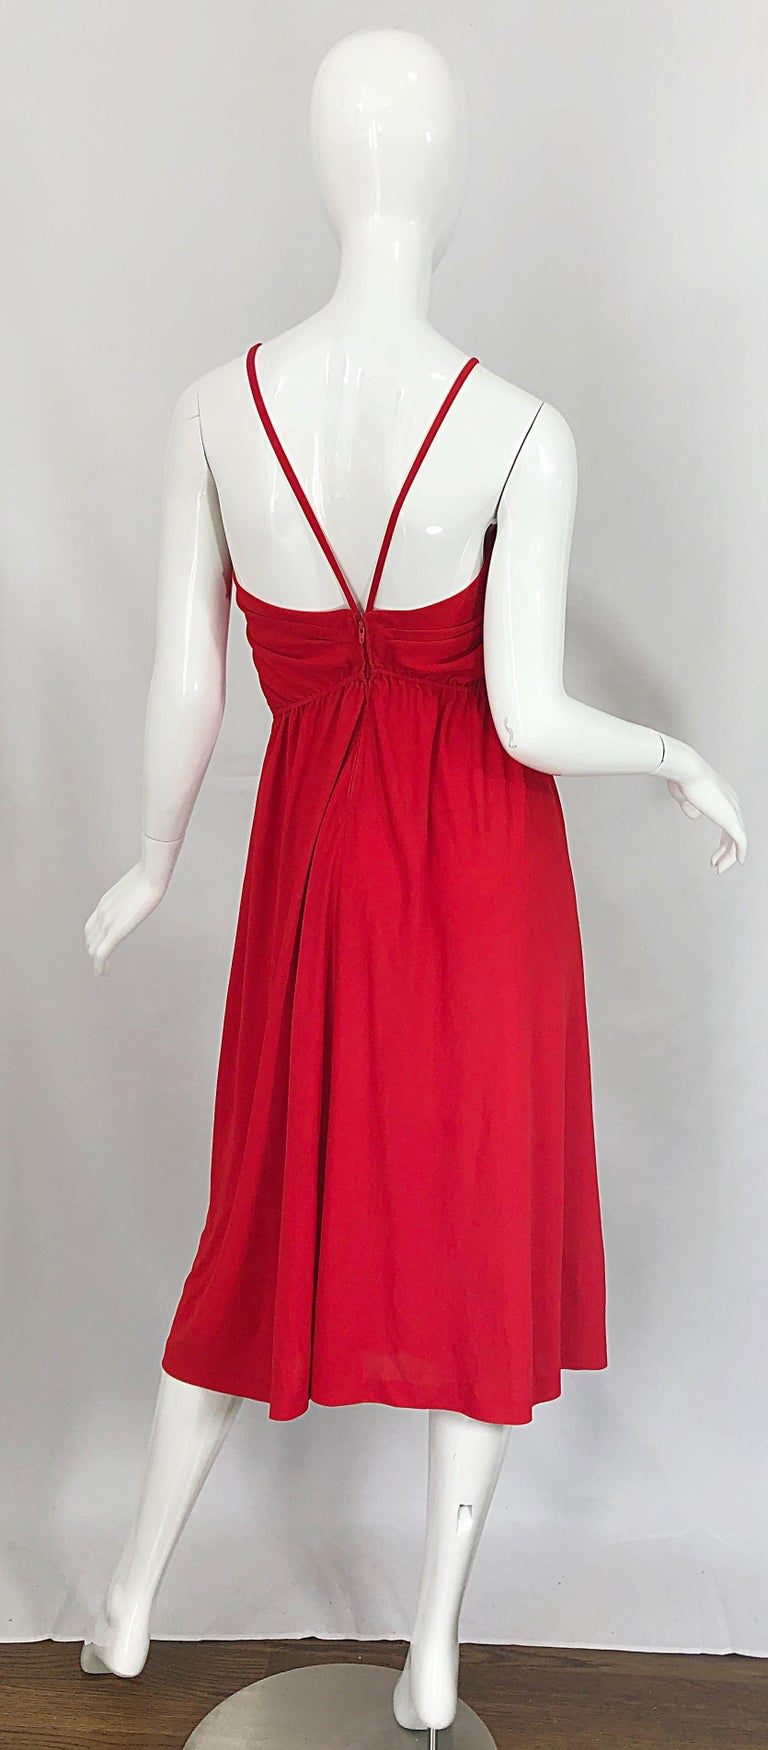 1970s Loris Azzaro Crimson Red Silk Jersey Grecian Inspired Vintage 70s Dress In Excellent Condition For Sale In Chicago, IL